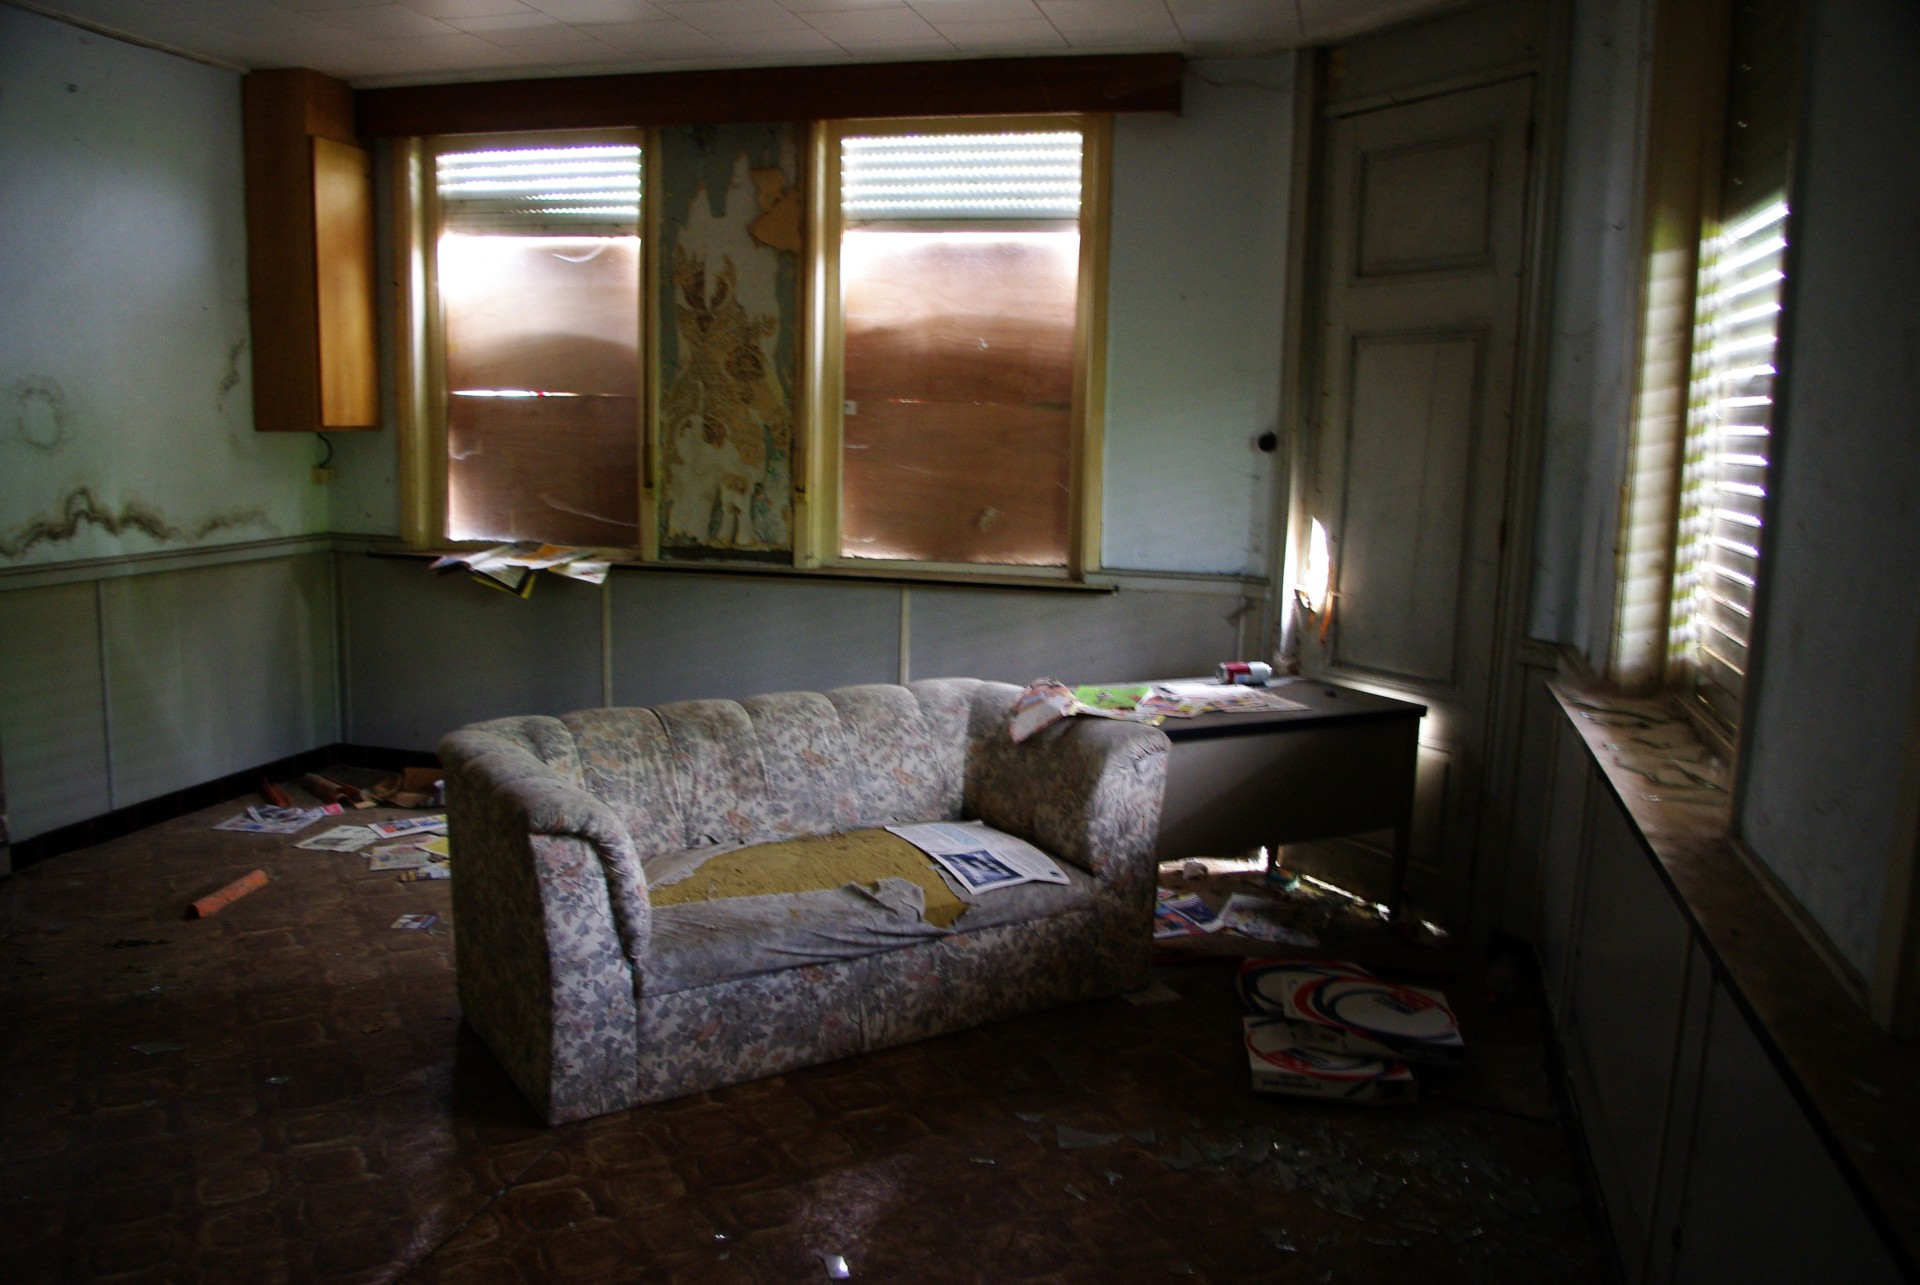 Abandoned House Free Stock Photo - Public Domain Pictures